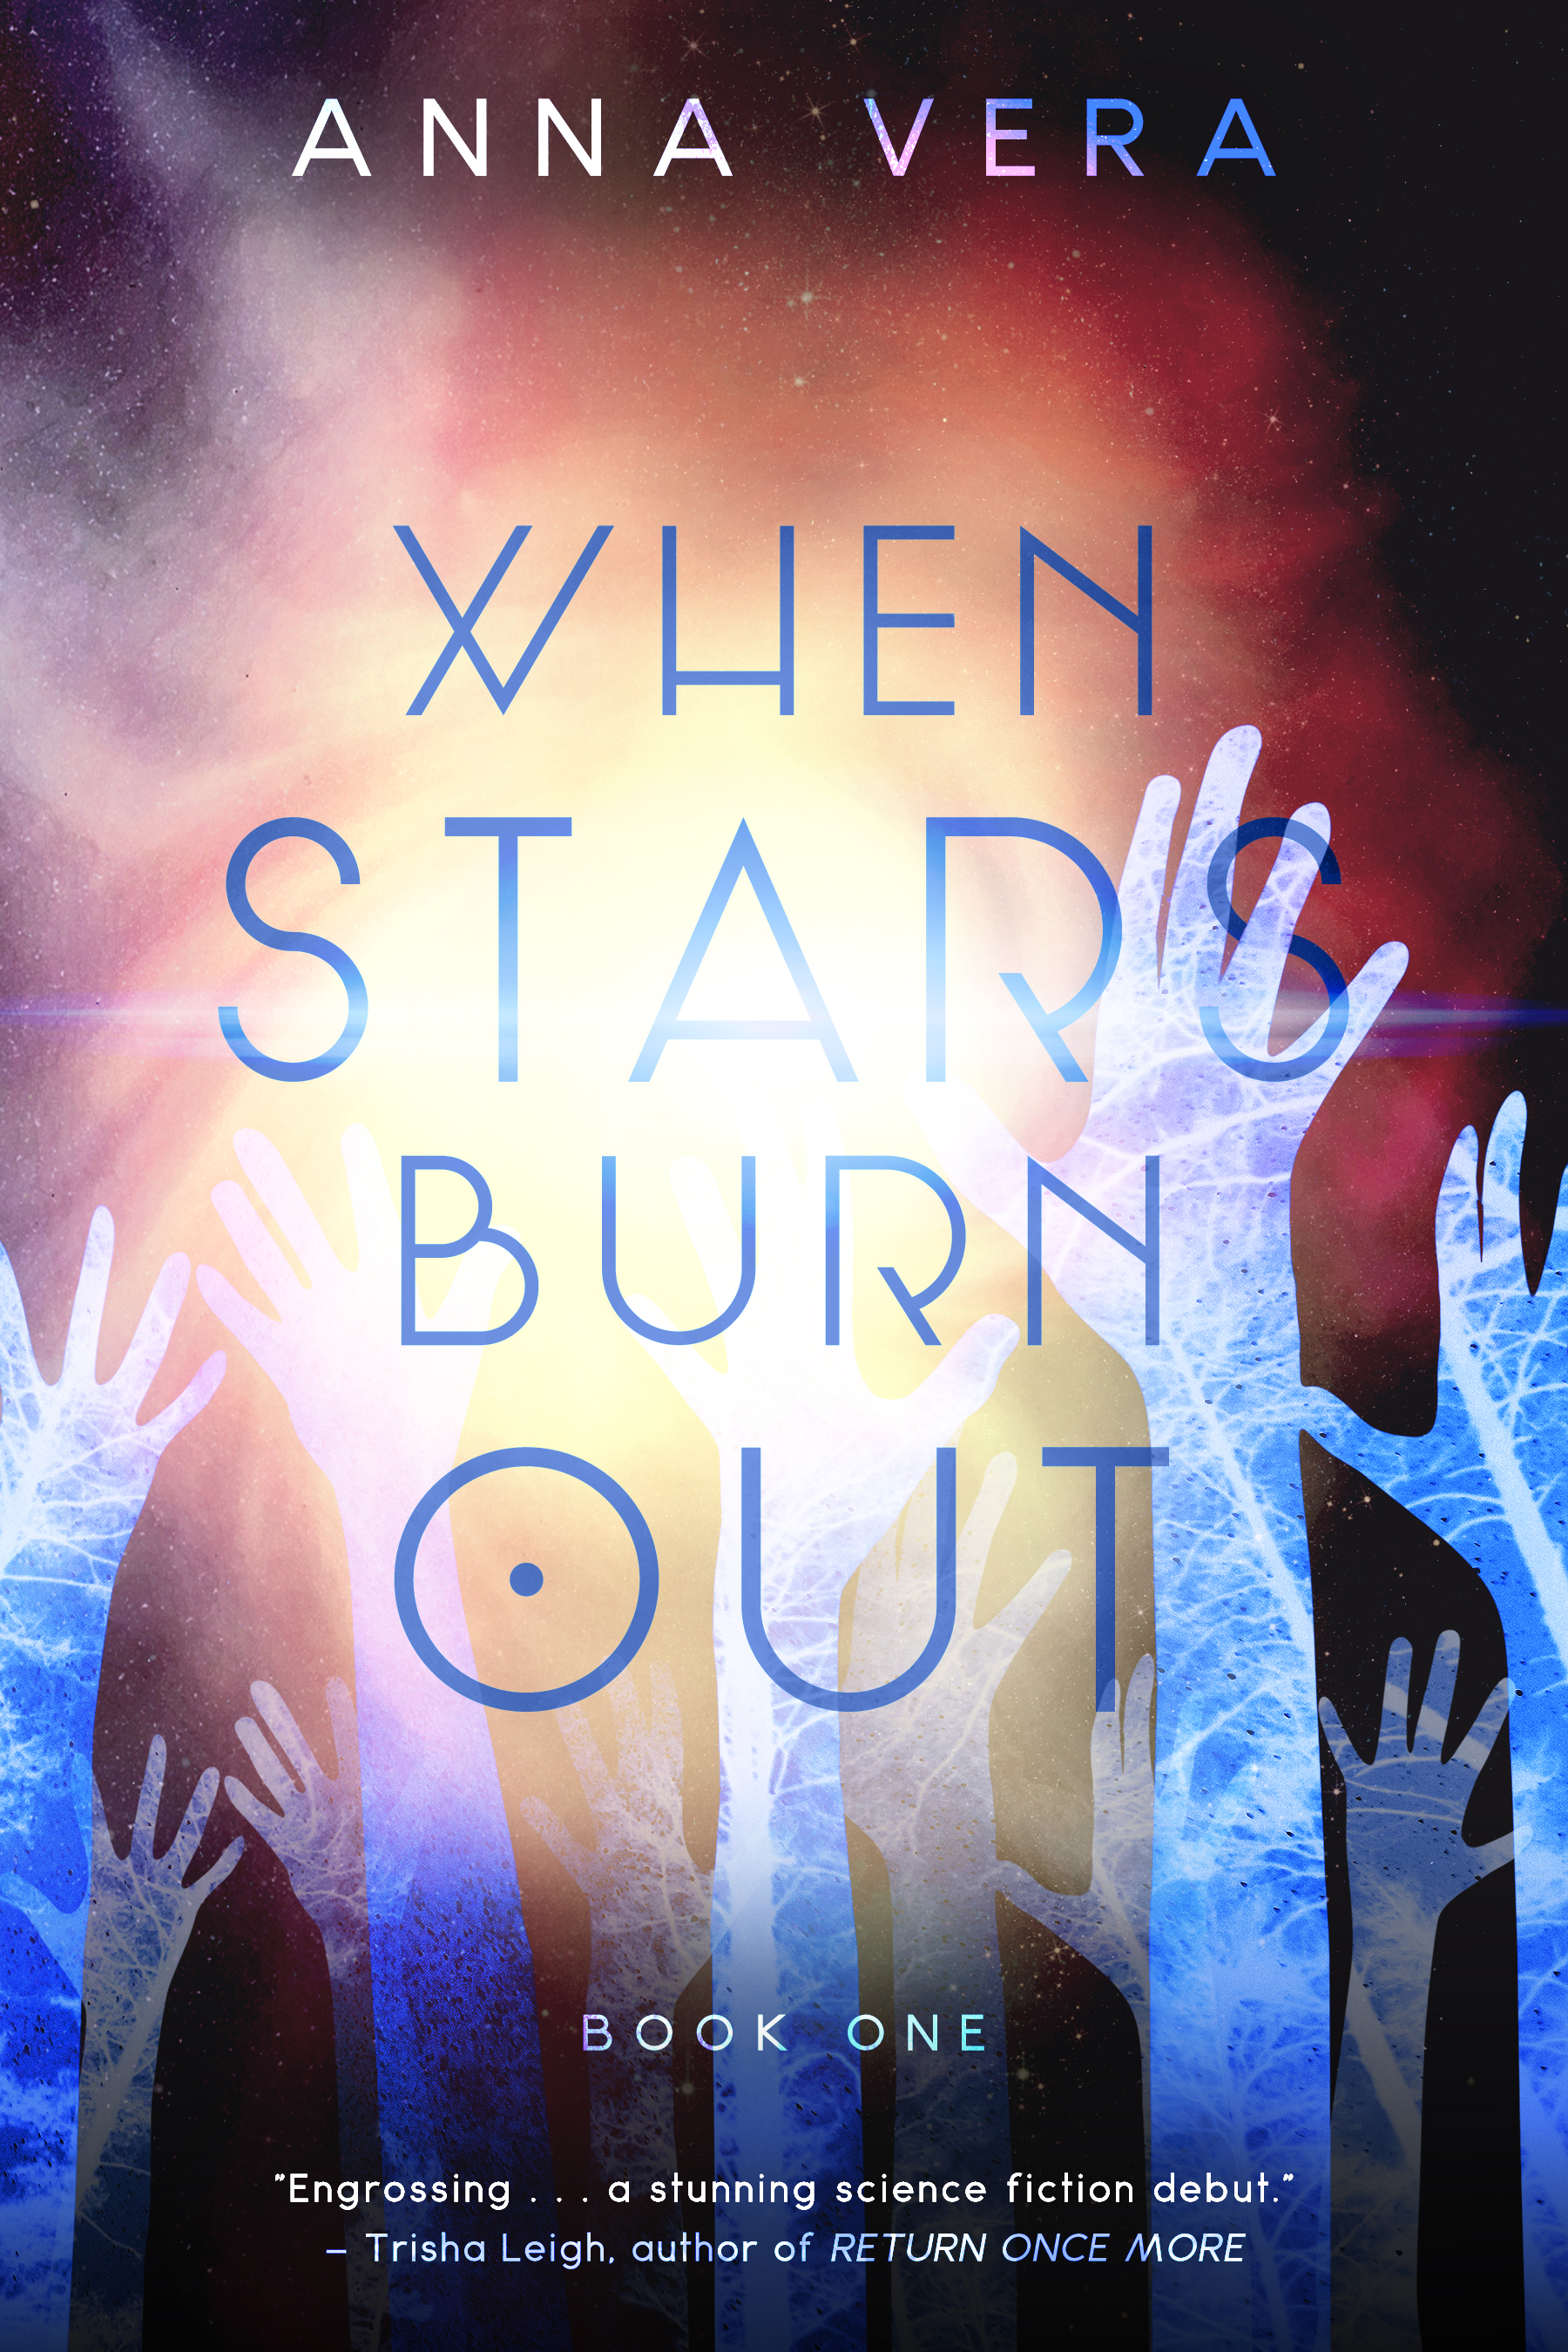 Book Cover of When The Stars Burn Out by Anna Vera